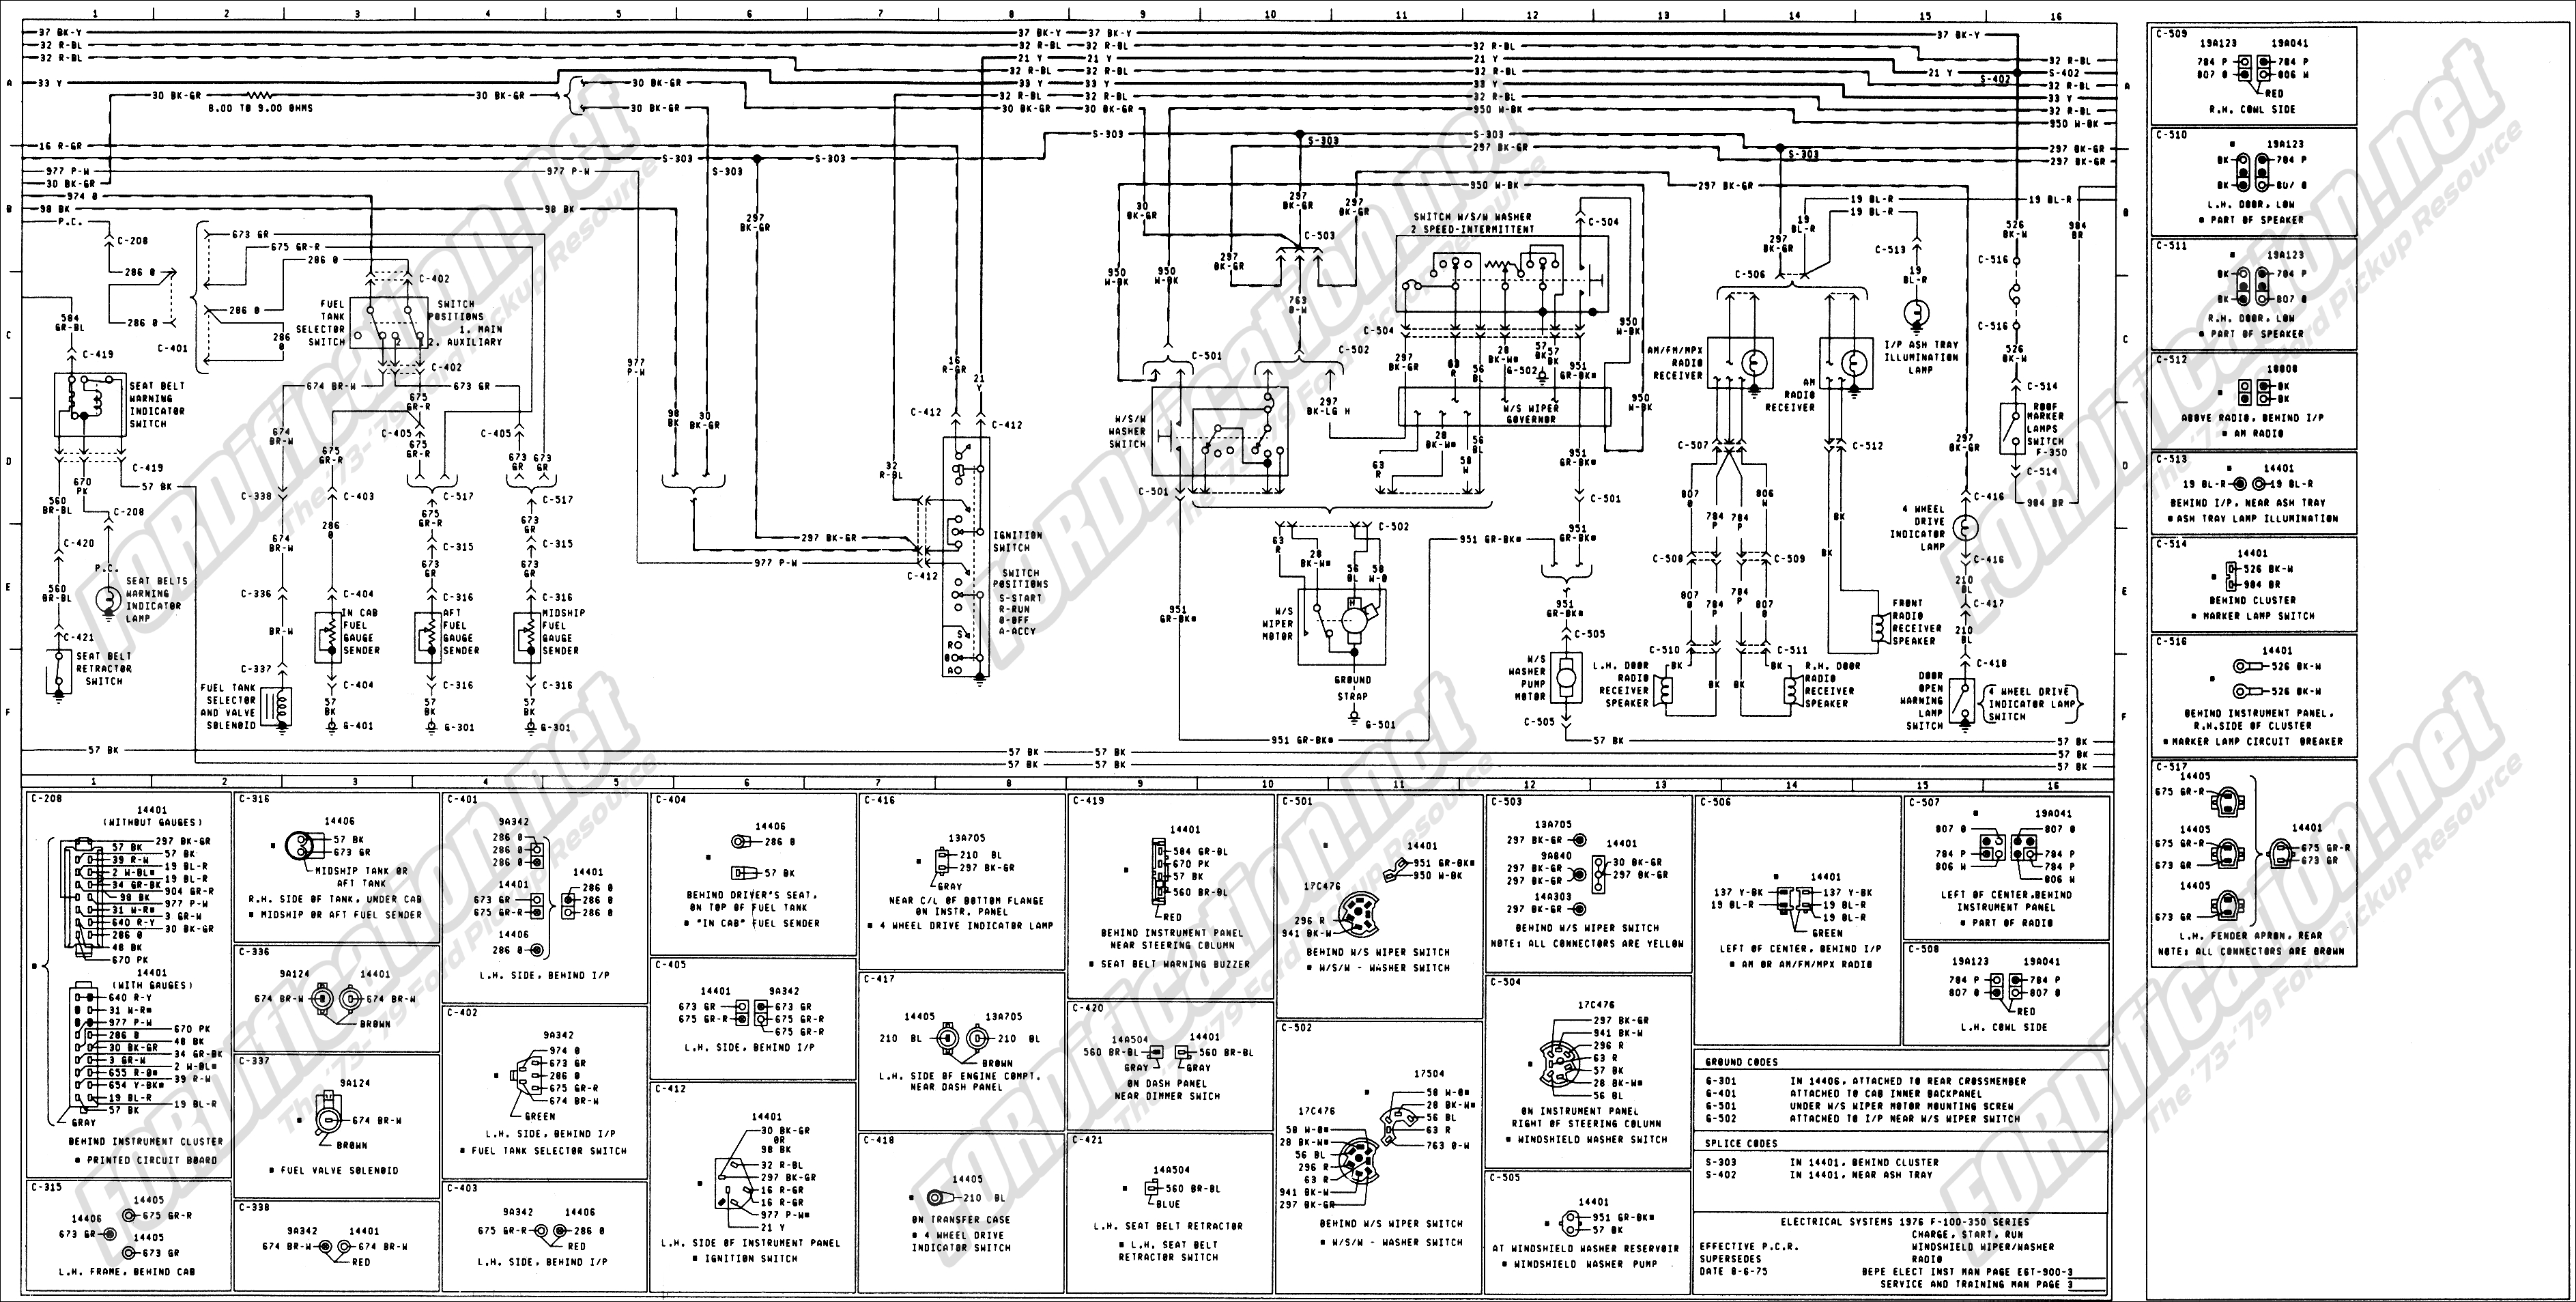 Rear Tail Light Wiring Diagram 1979 Ford - Today Wiring Diagram - F150 Trailer Light Wiring Diagram